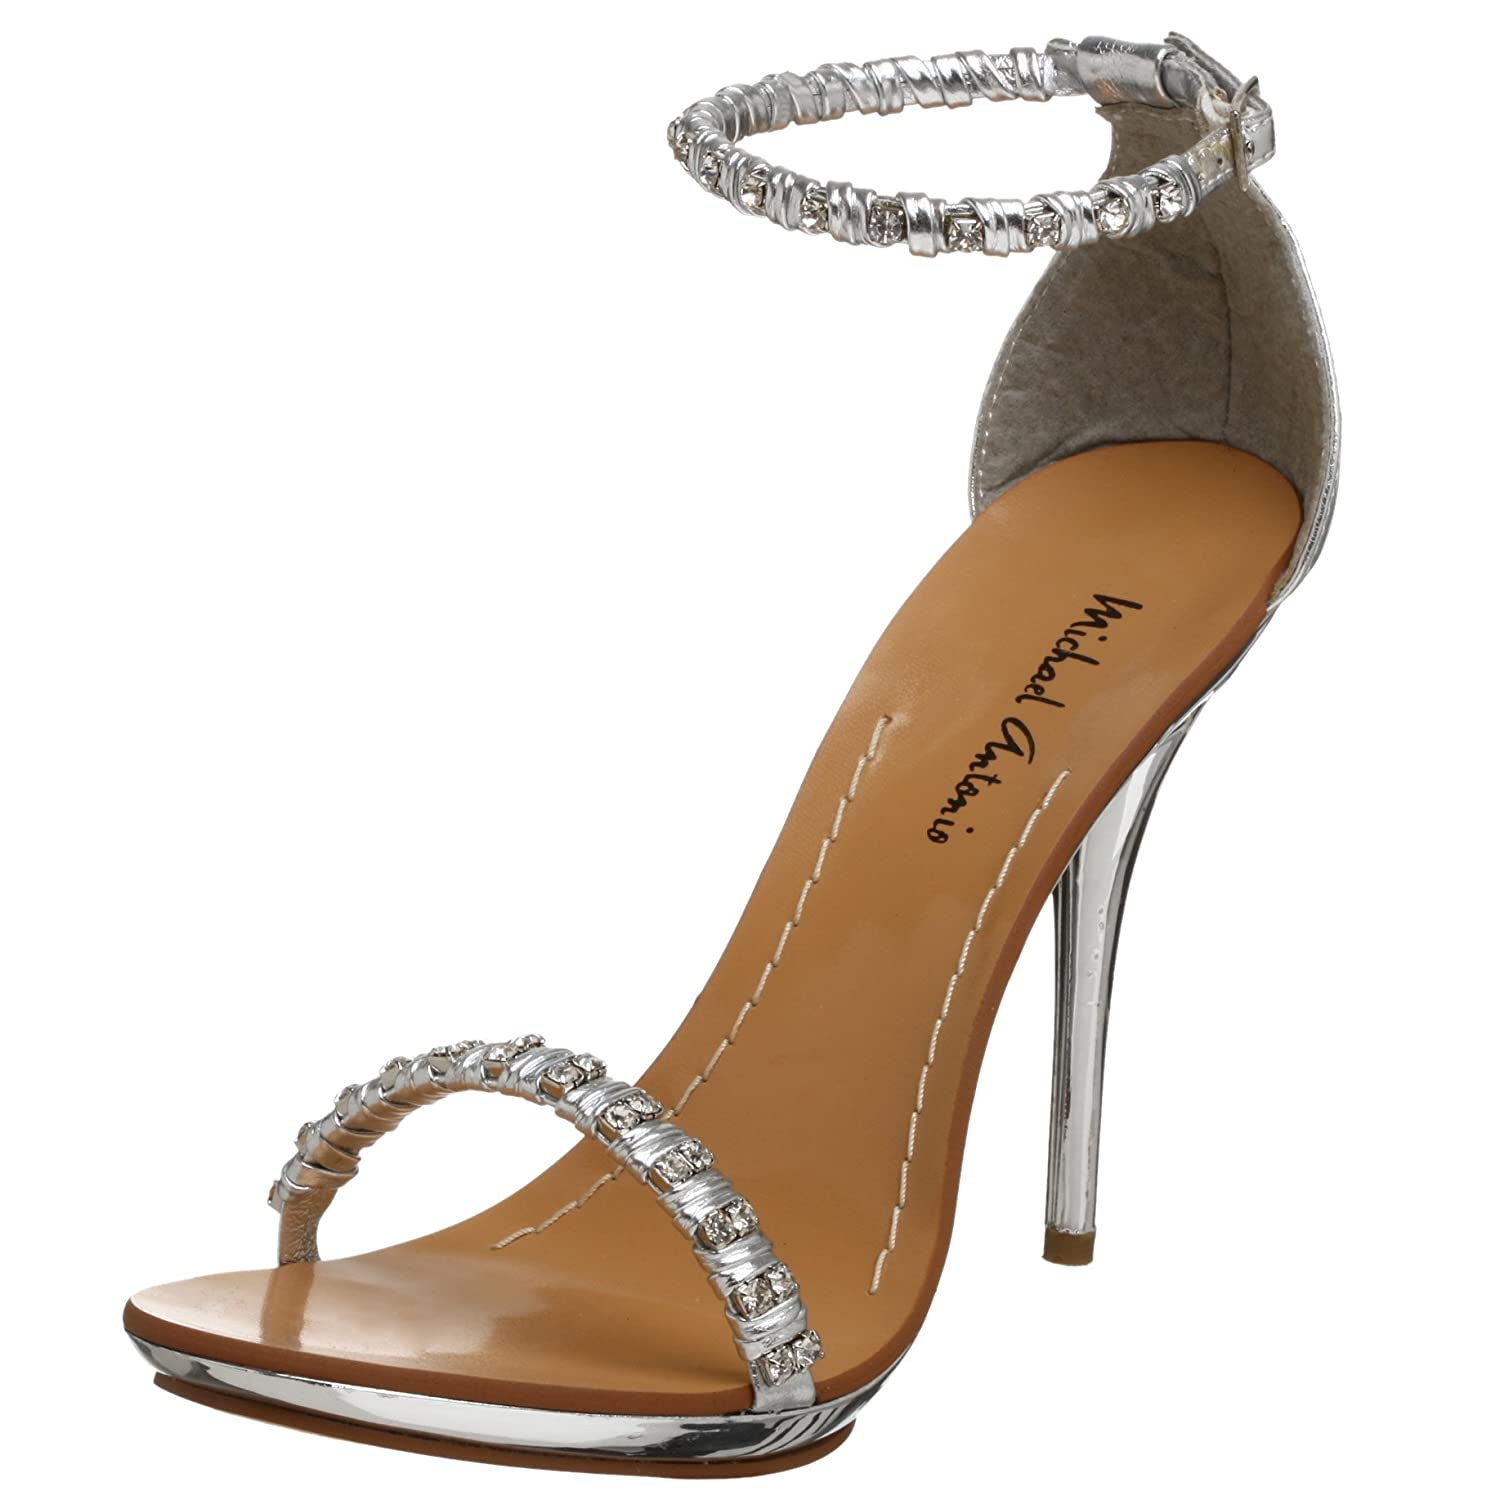 Endless.com: Michael Antonio Women's Touch Dress Sandal: Sandals - Free Overnight Shipping & Return Shipping